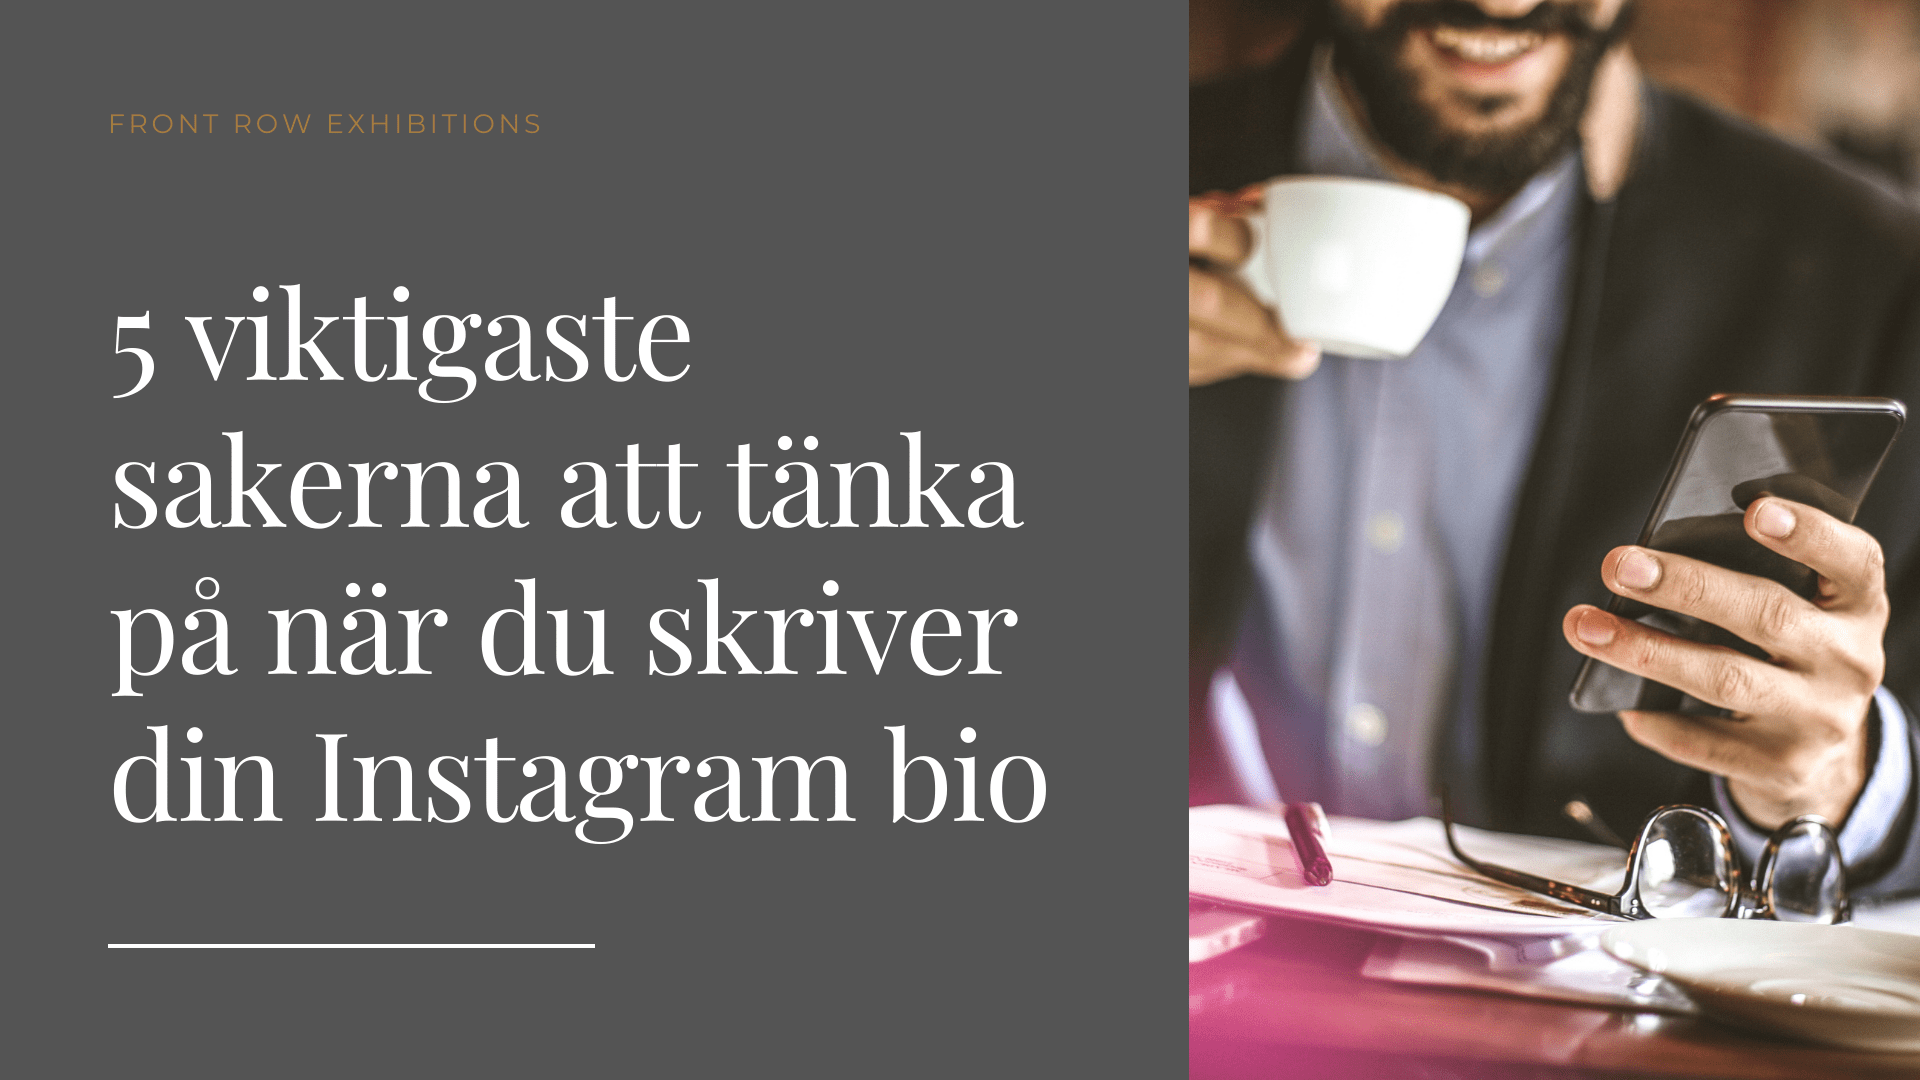 Skriv en bättre Instagram biografi Front Row Exhibitions Framgångstips